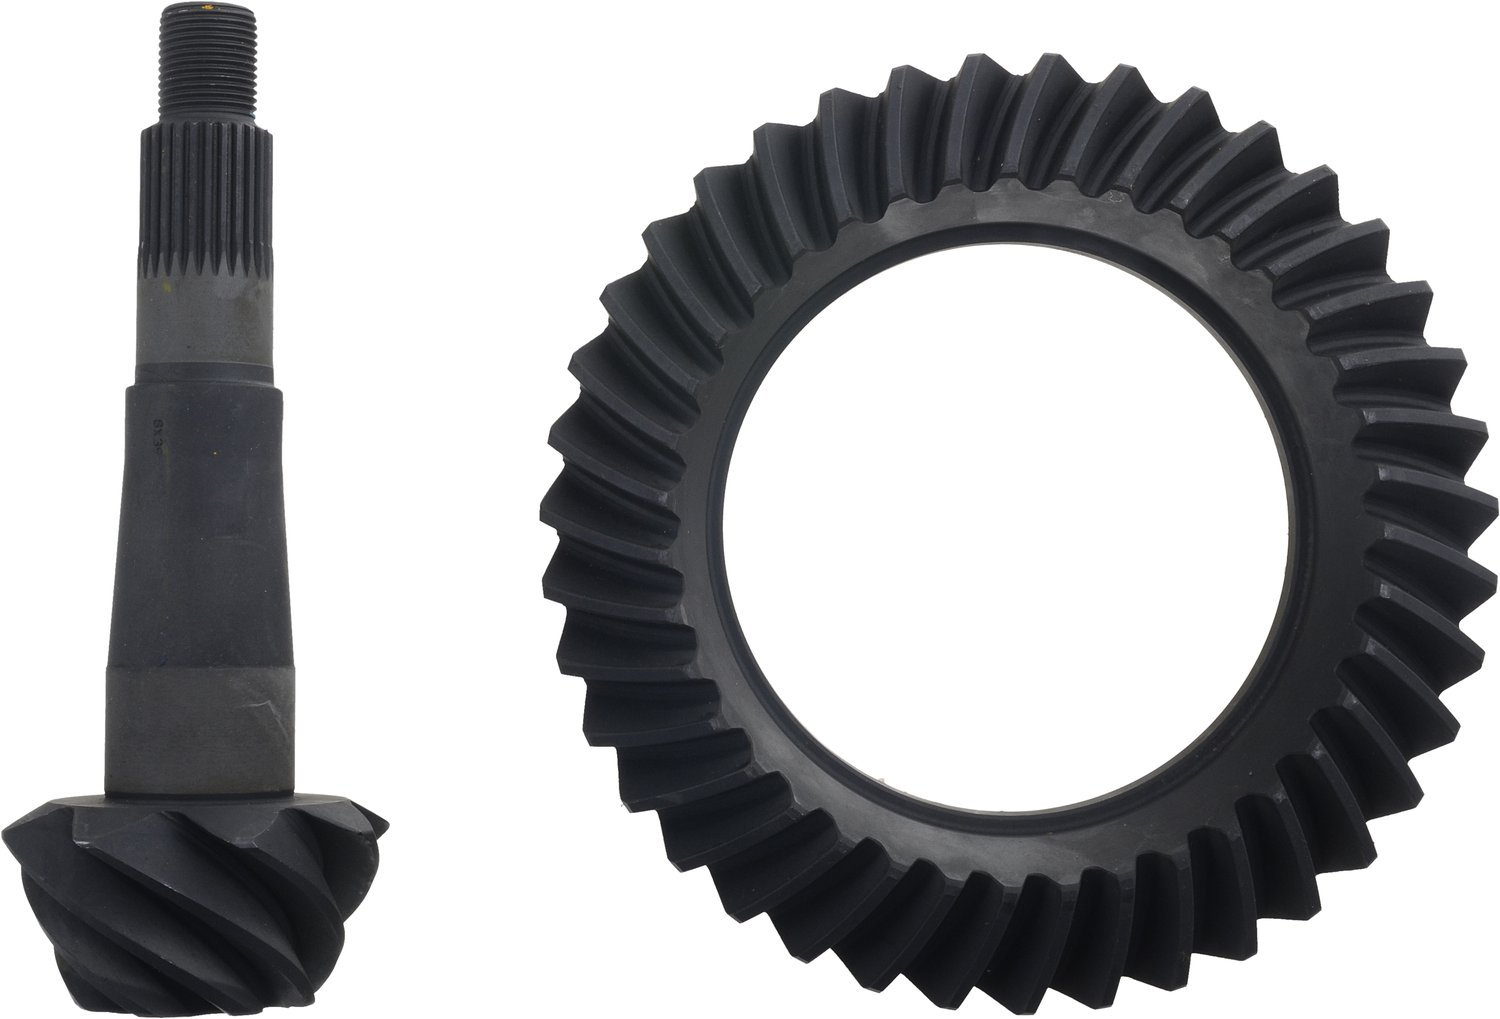 SVL 10009174 Differential Ring and Pinion Gear Set for Chrysler 8.25 4.88 Ratio